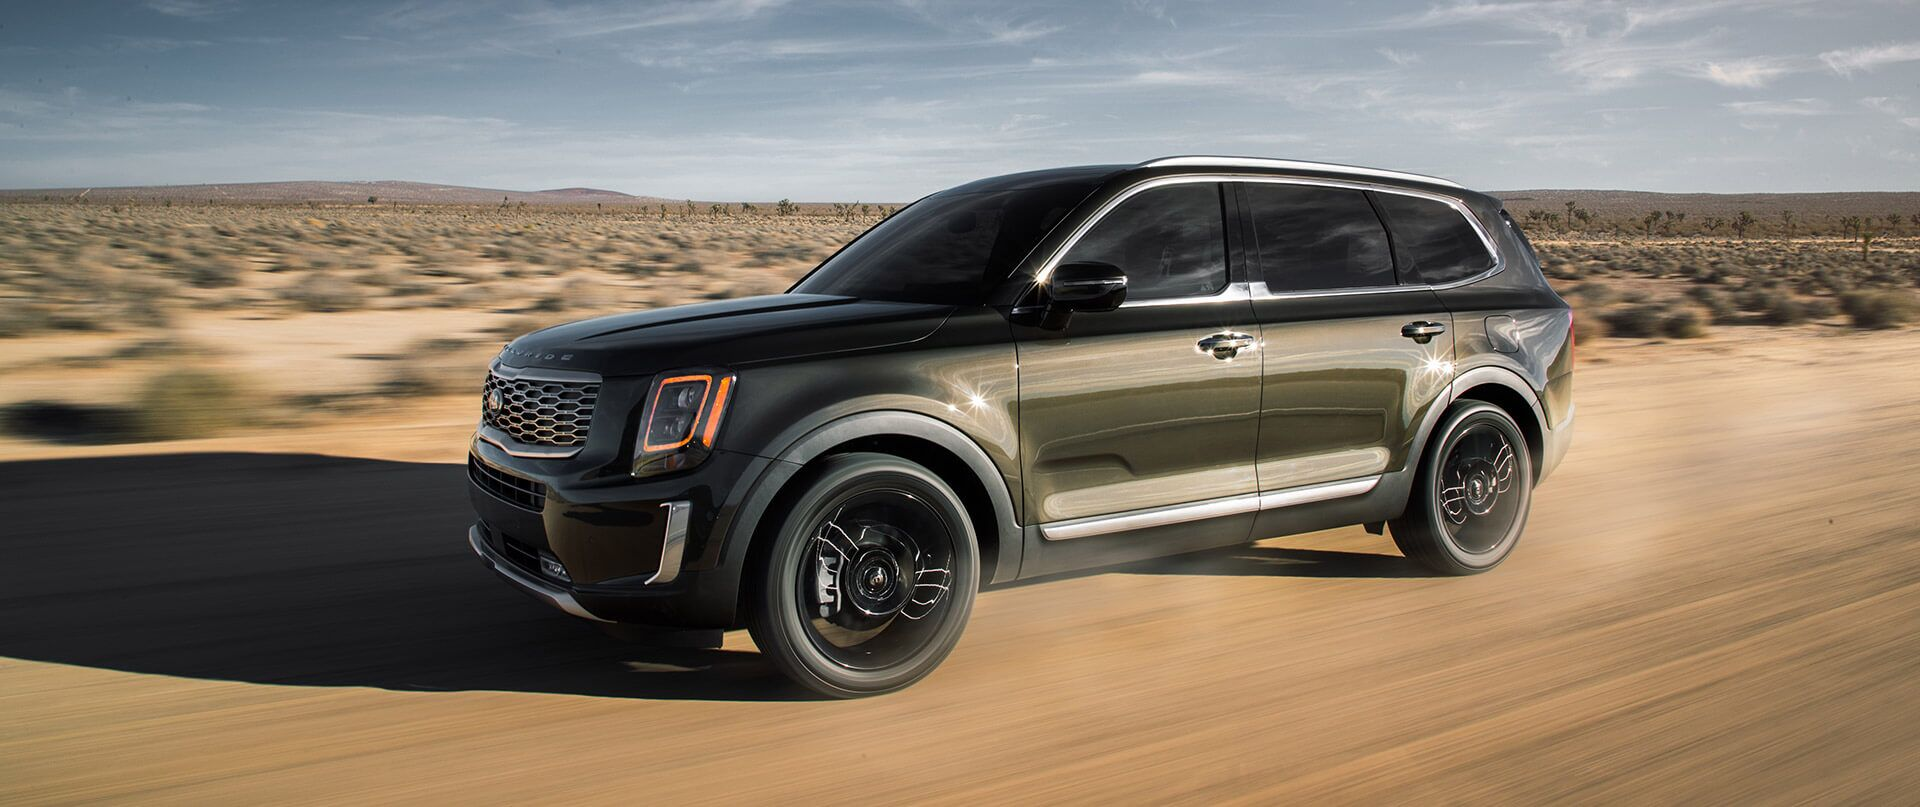 2020 Kia Telluride in St. Cloud, MN